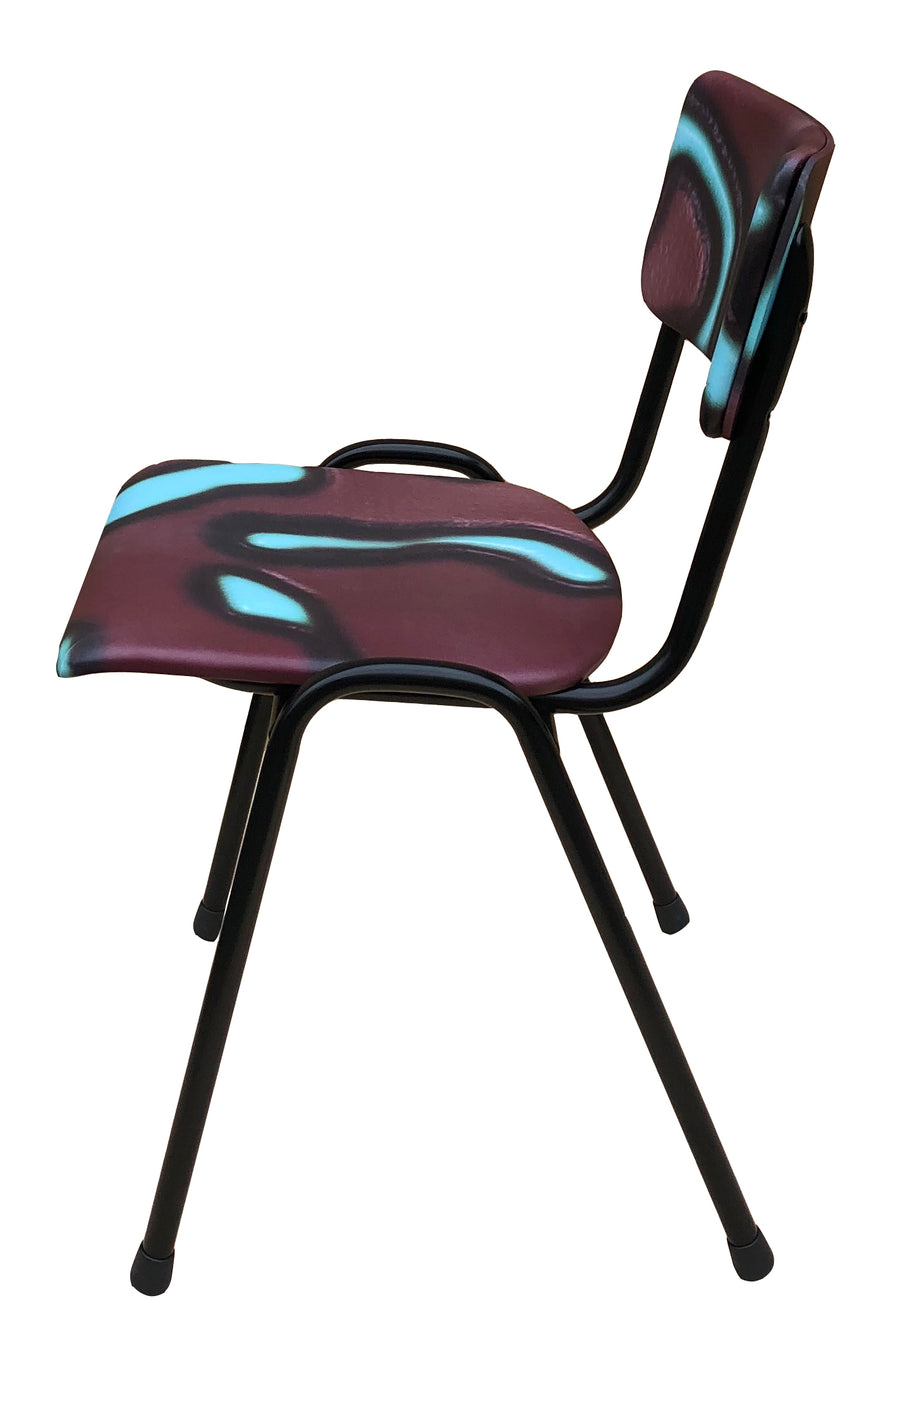 QIQQOO Chair